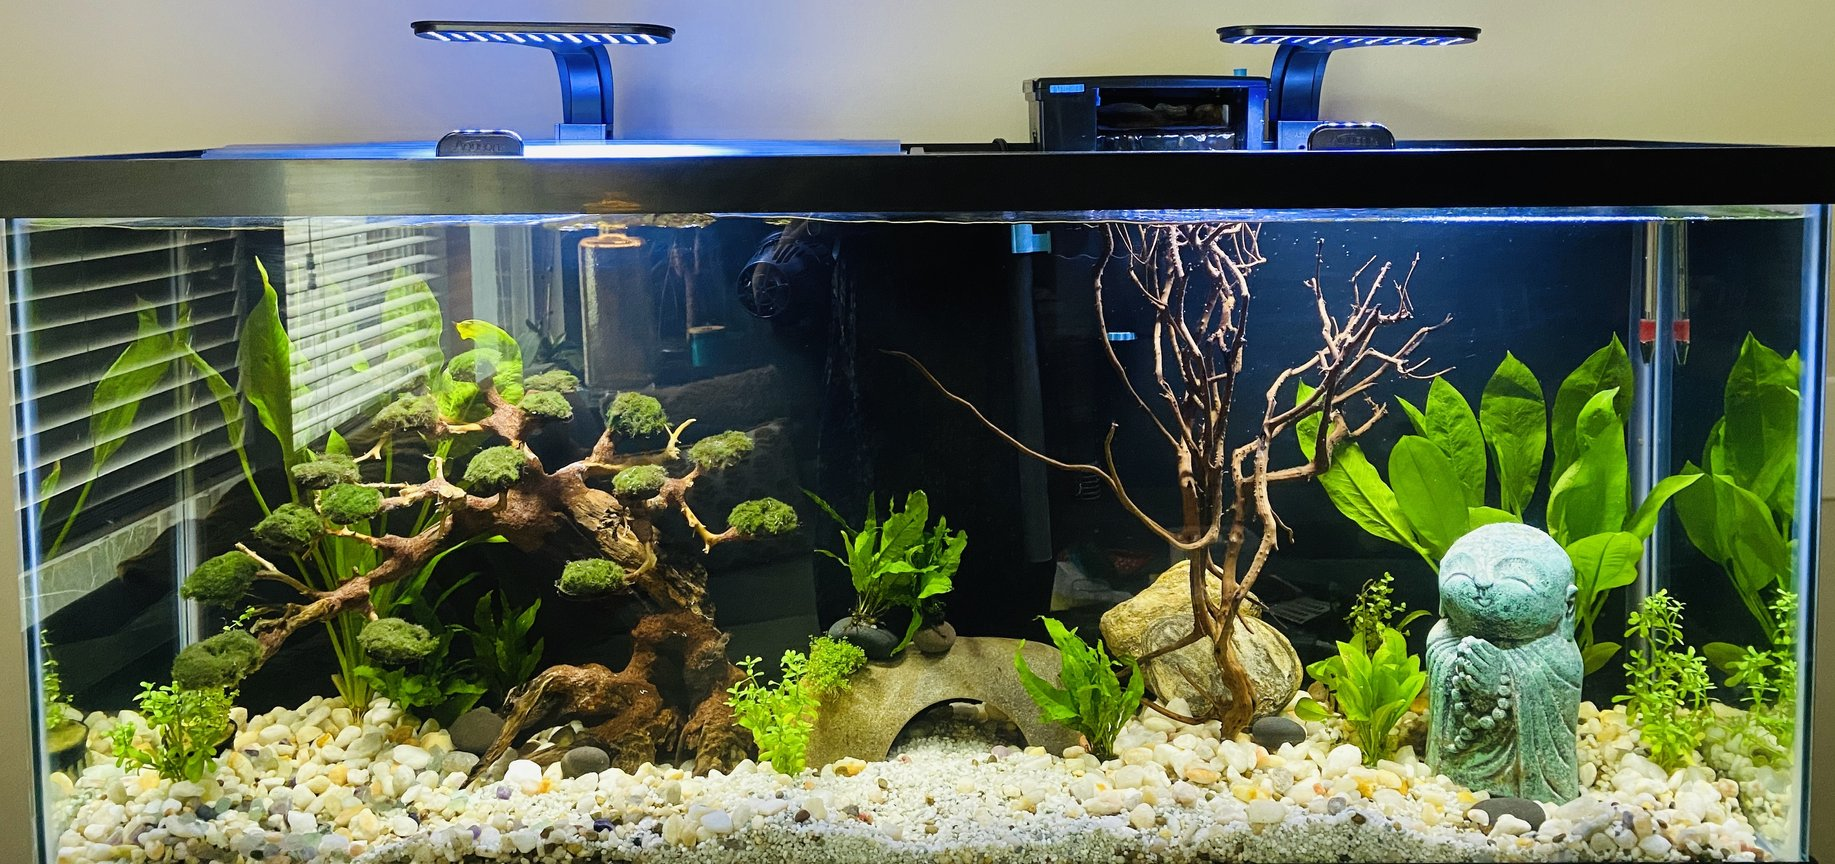 55 gallons planted tank (mostly live plants and fish) - Zen Garden